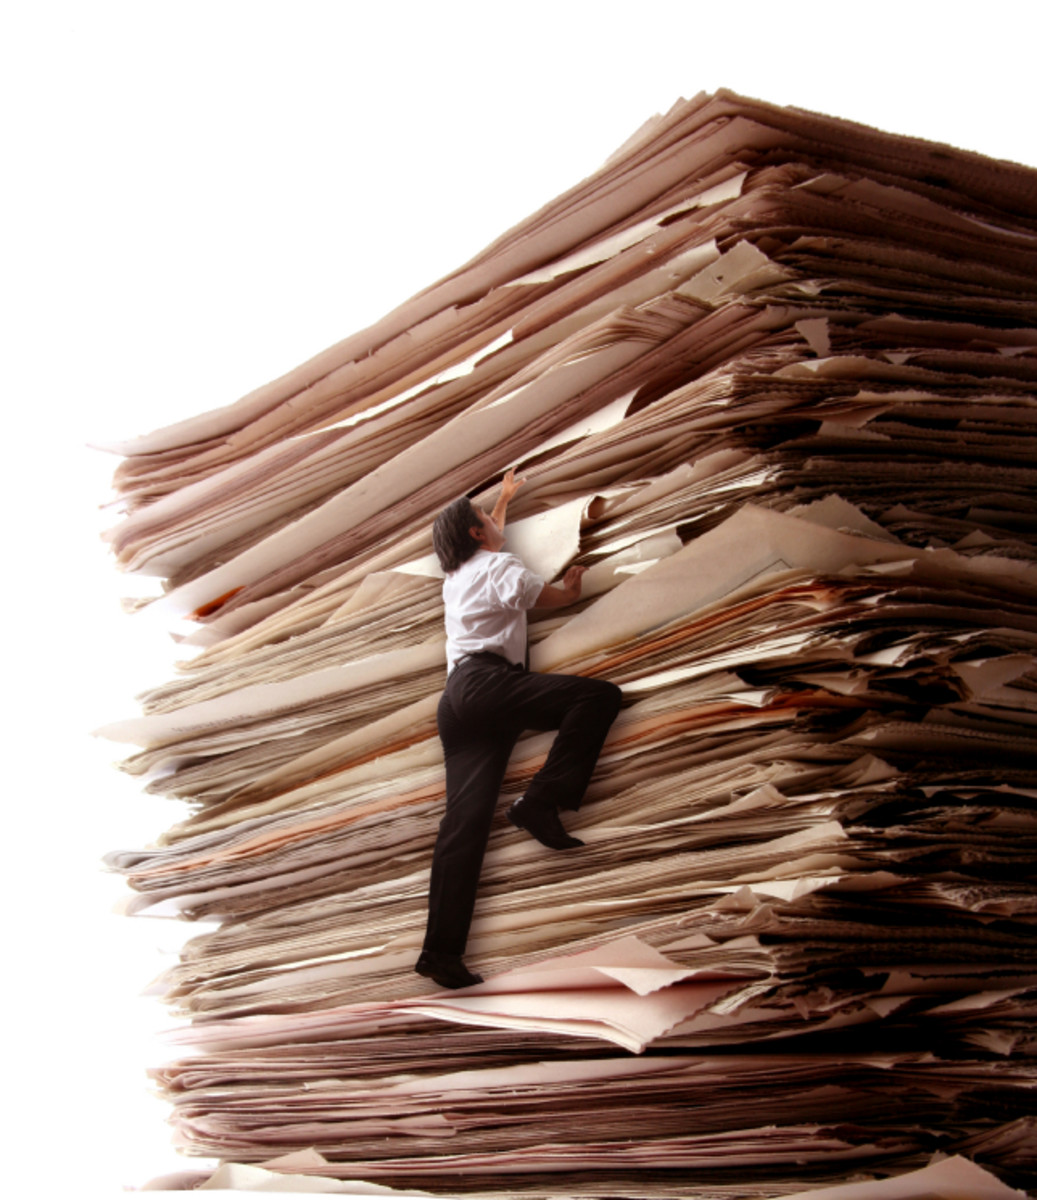 Did your bully boss suddenly fill your file with mountains of paper.